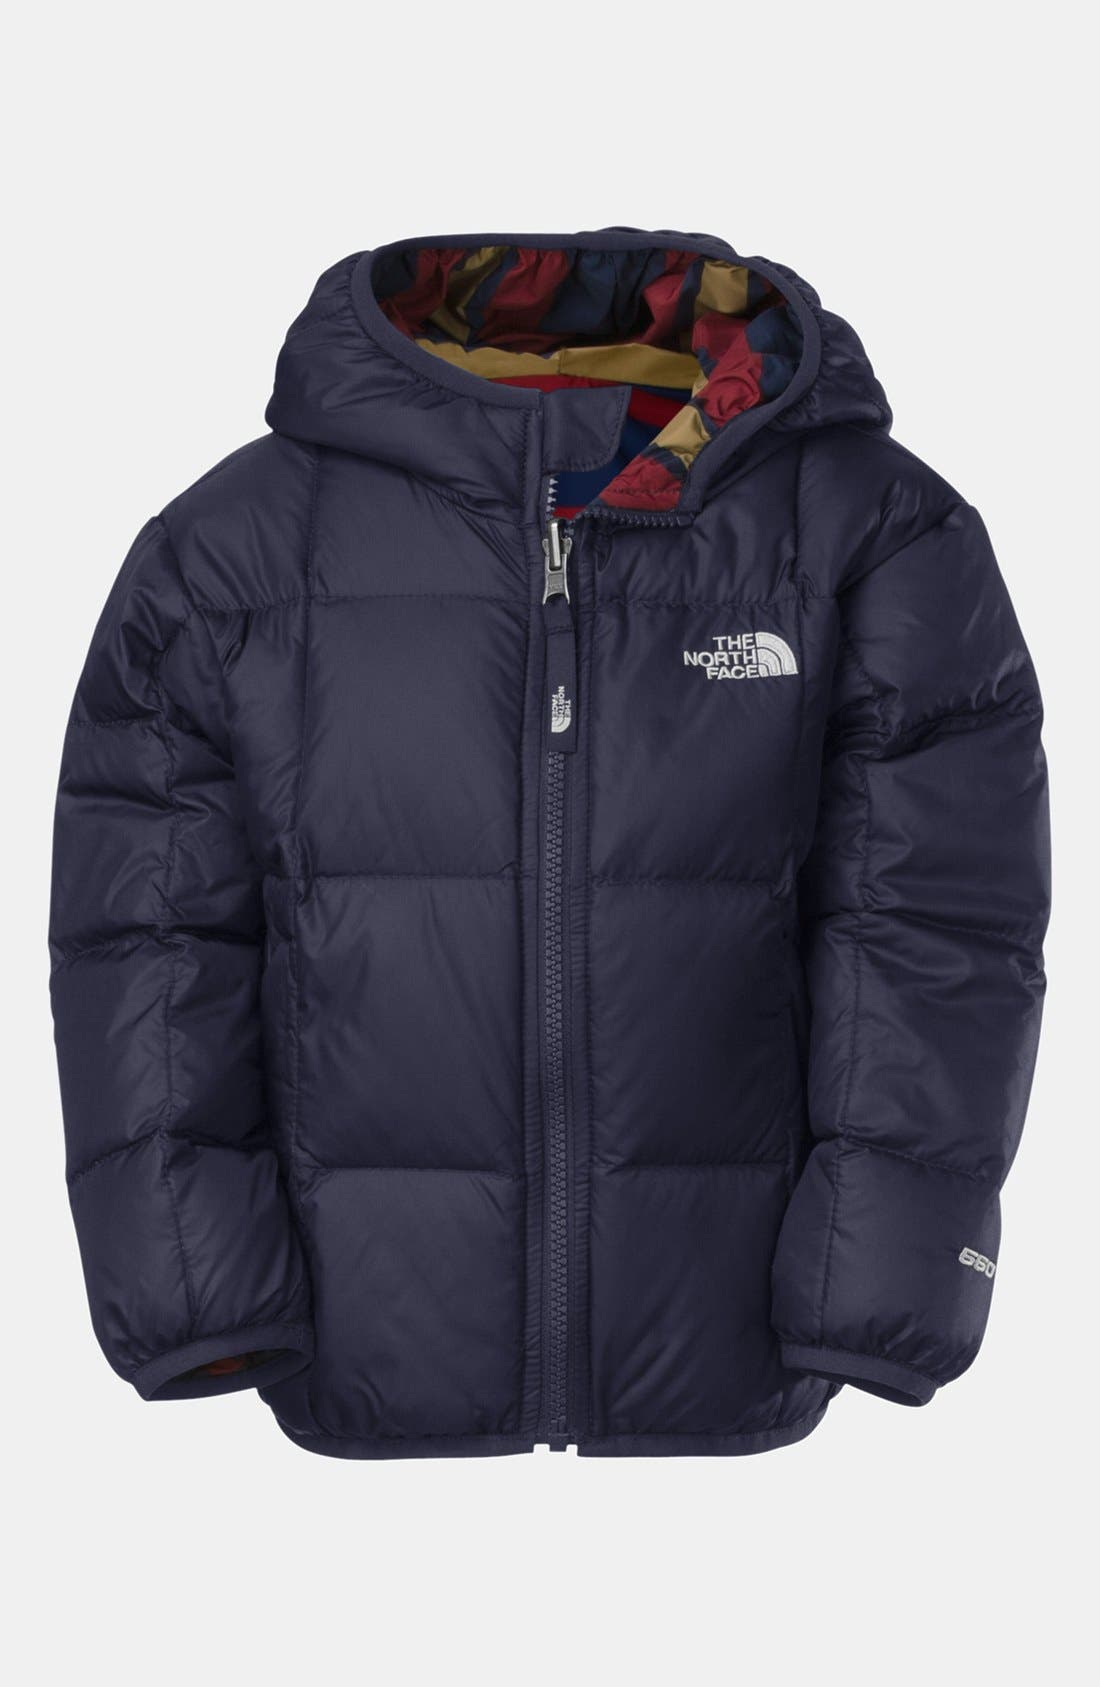 Main Image - The North Face 'Moondoggy' Reversible Quilted Down Jacket (Toddler Boys)